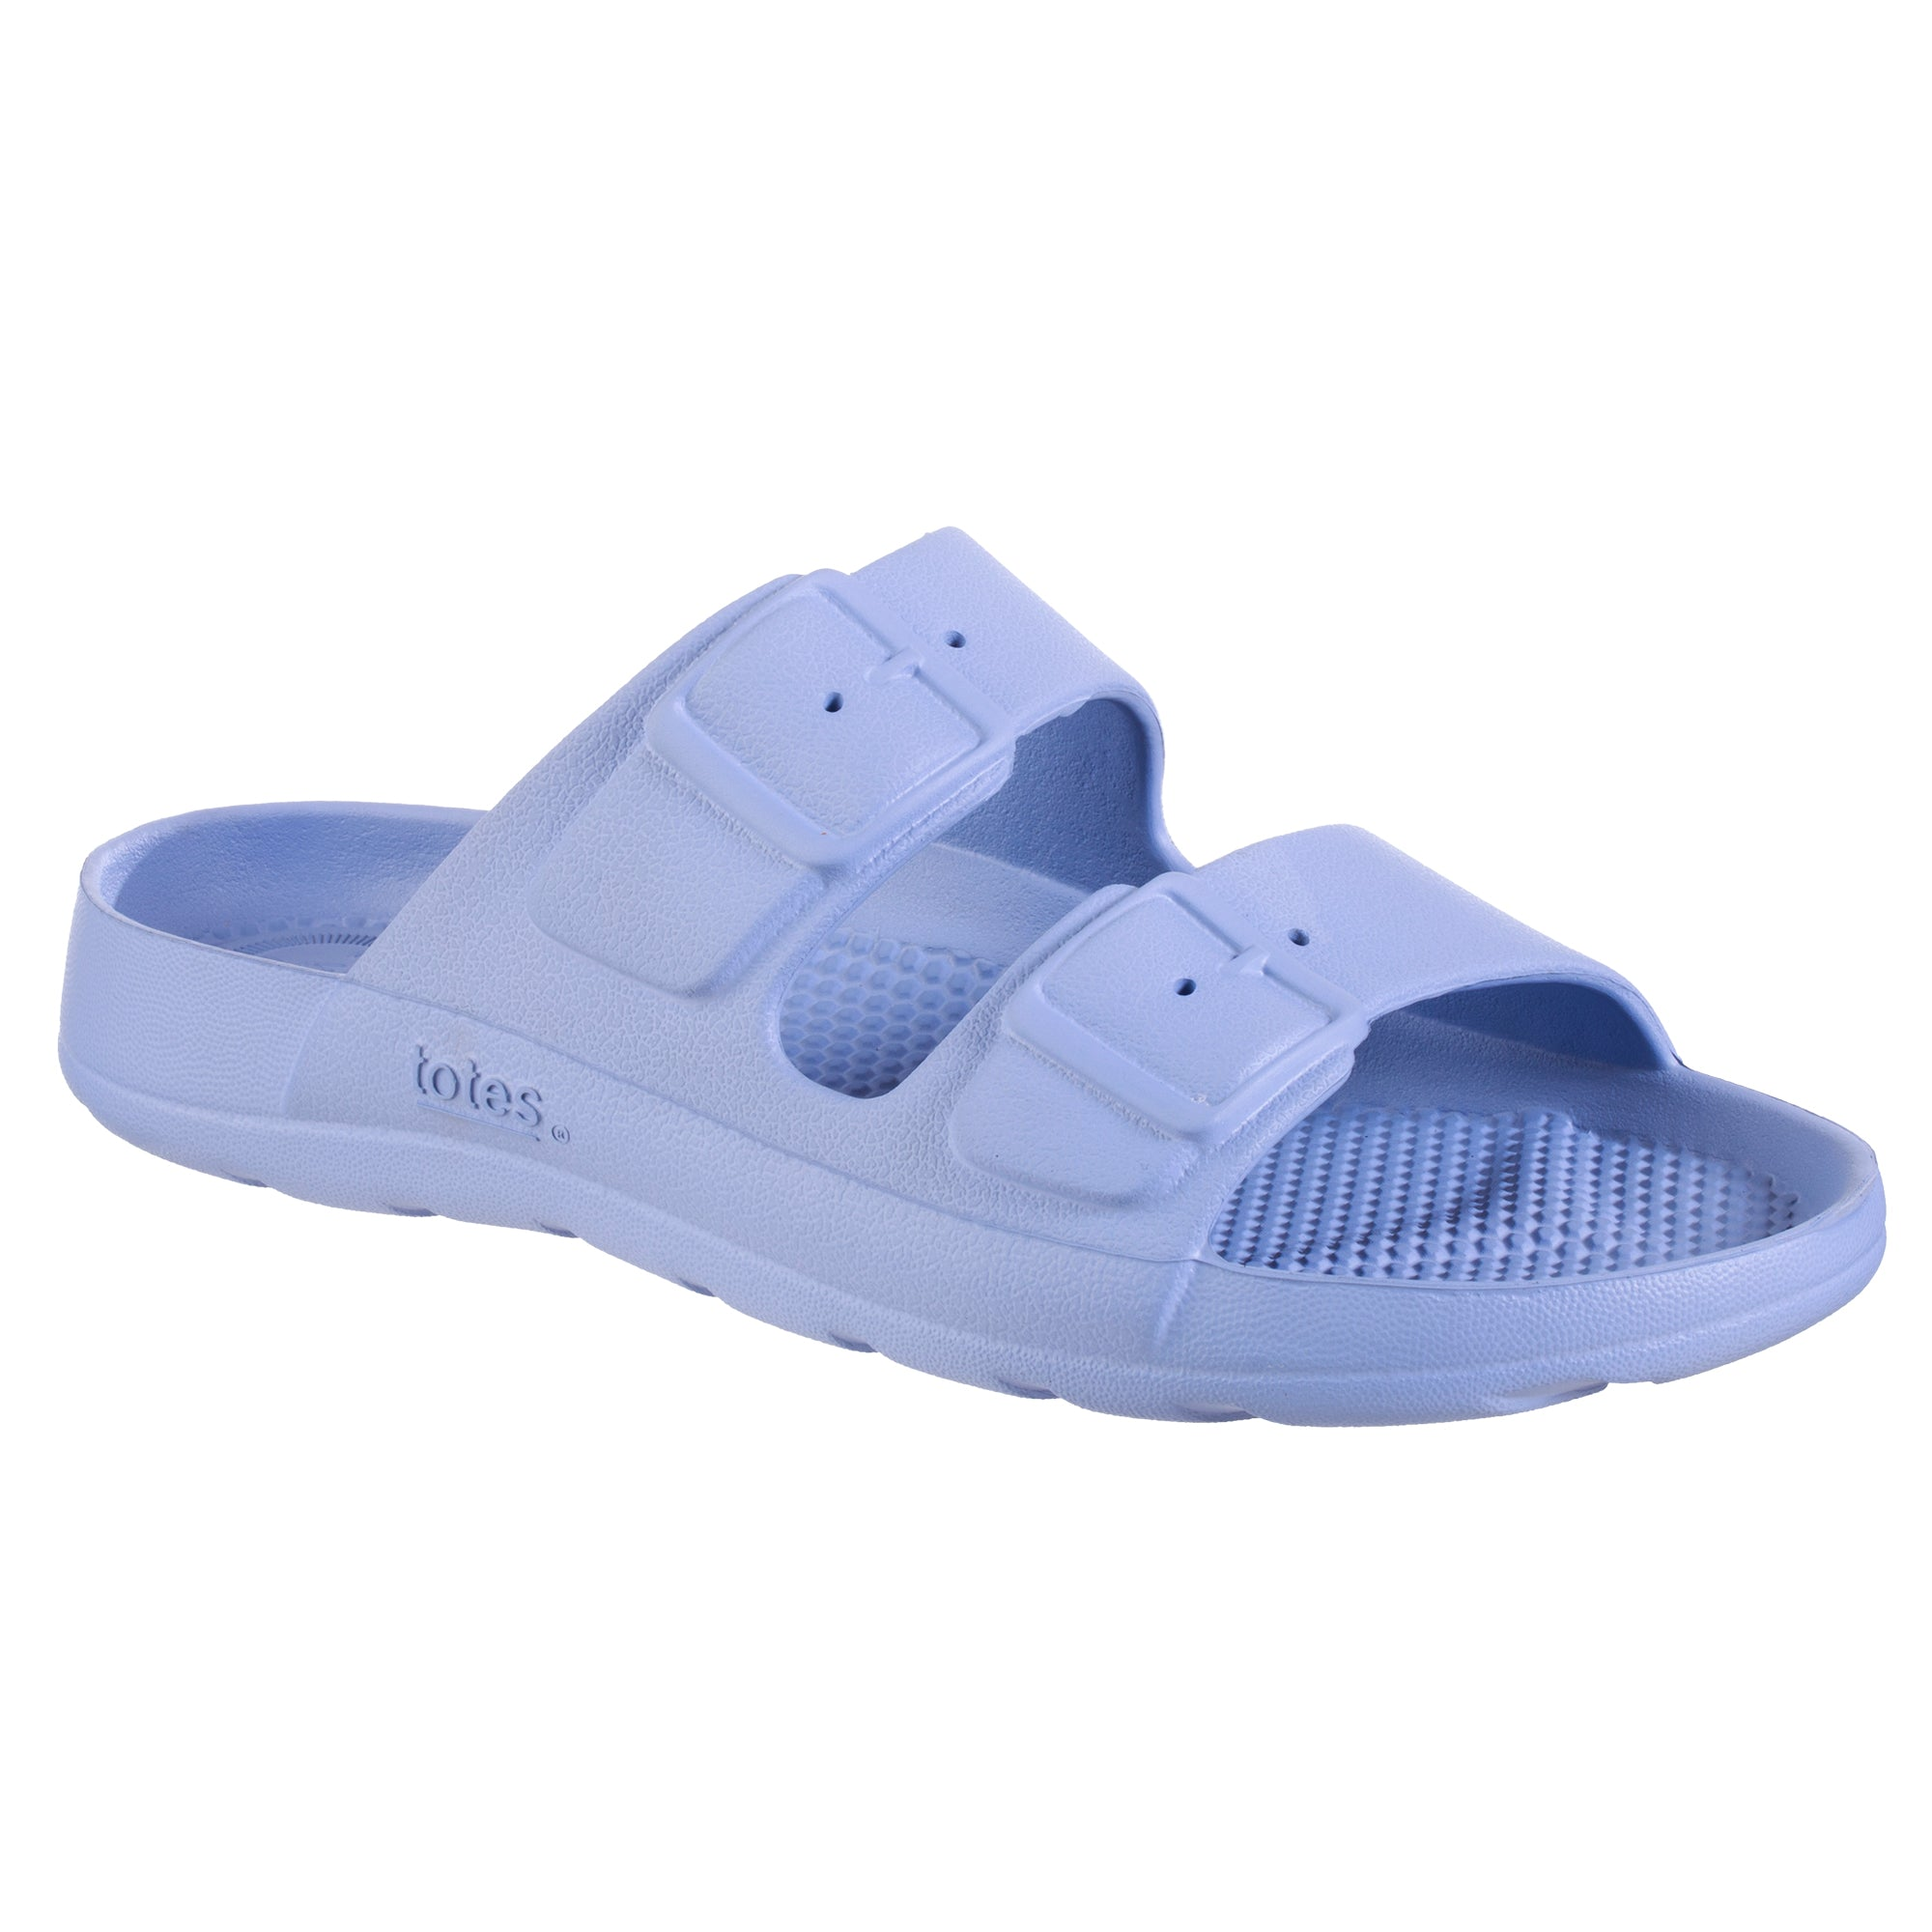 Totes Women's Sol Bounce Molded Buckle Slide